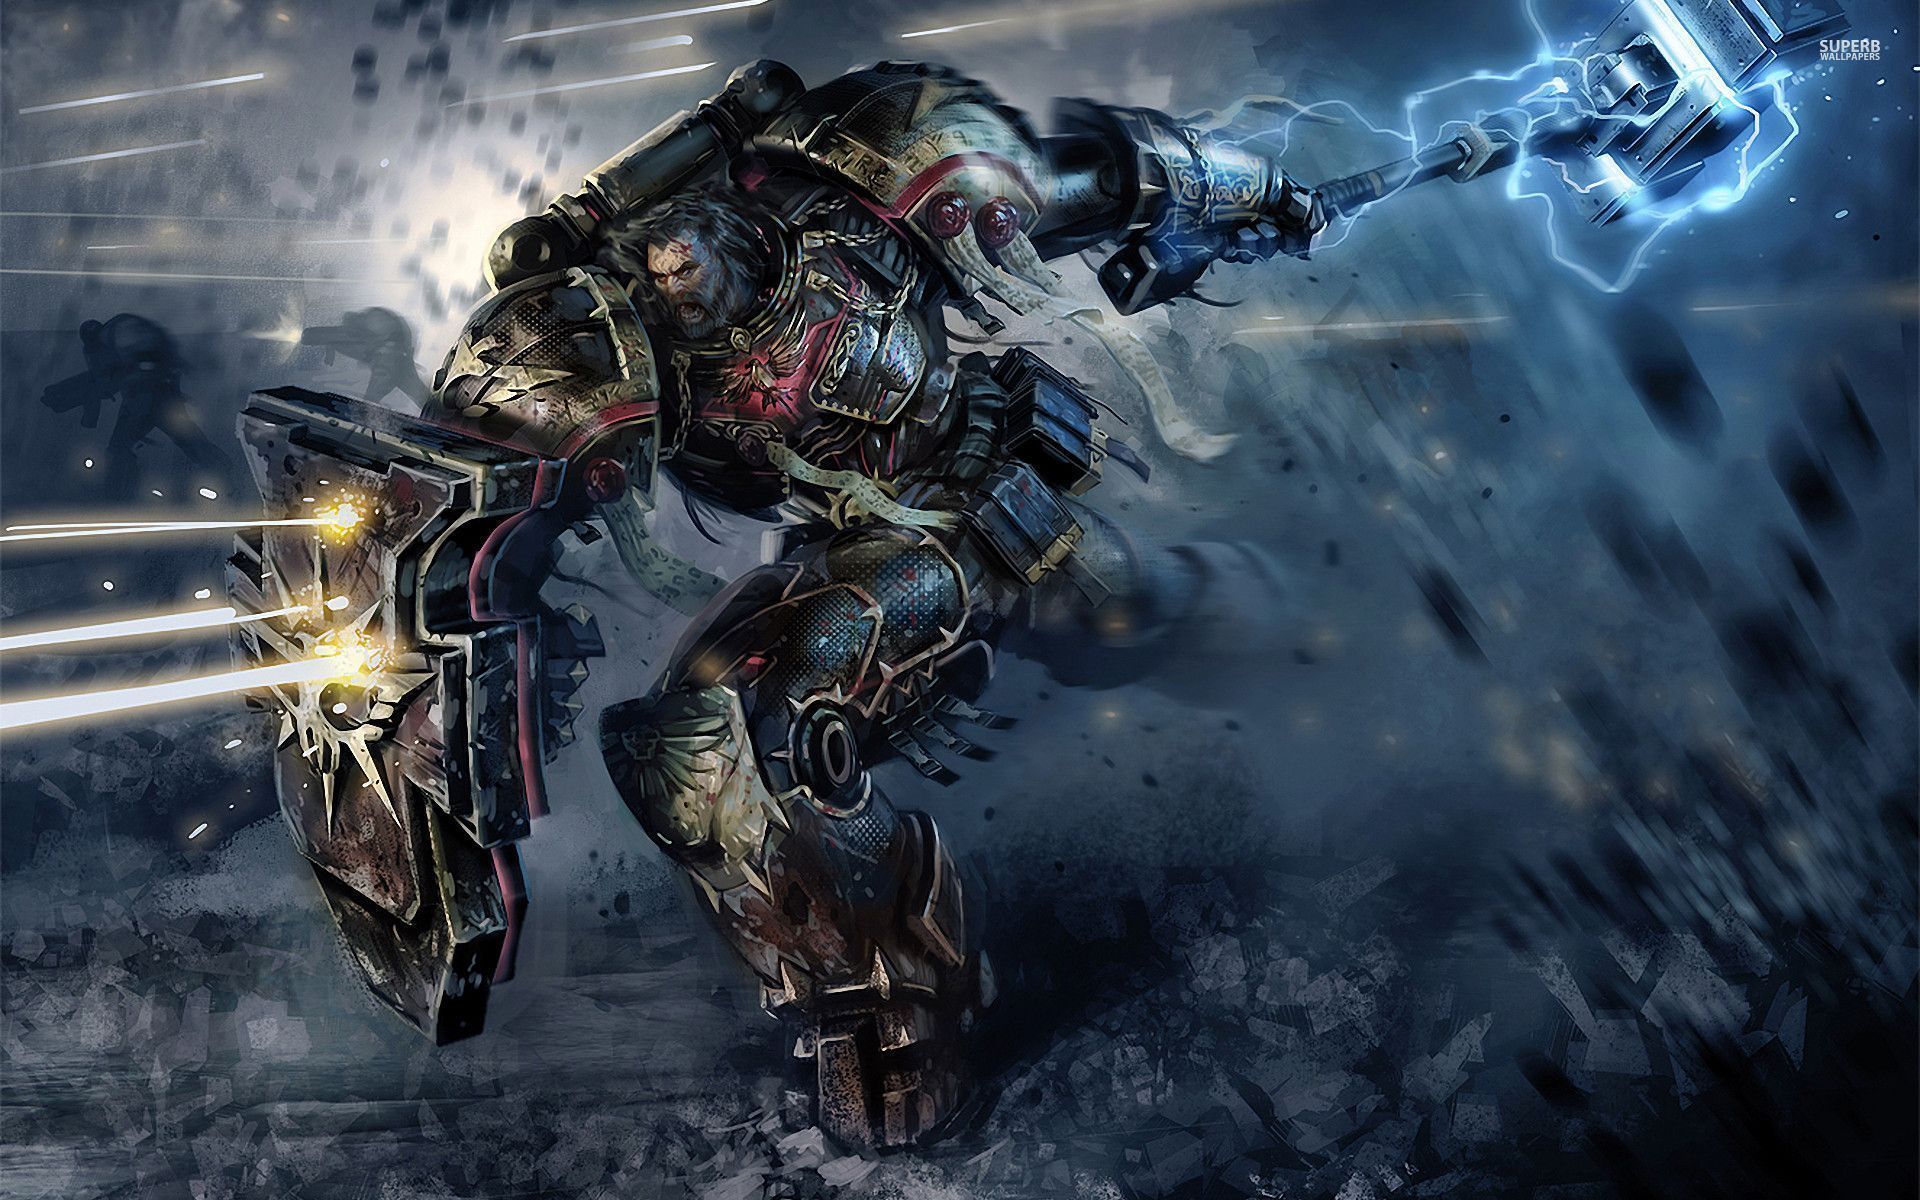 Space Marines Wallpaper Space Marine Warhammer Warhammer 40k Artwork